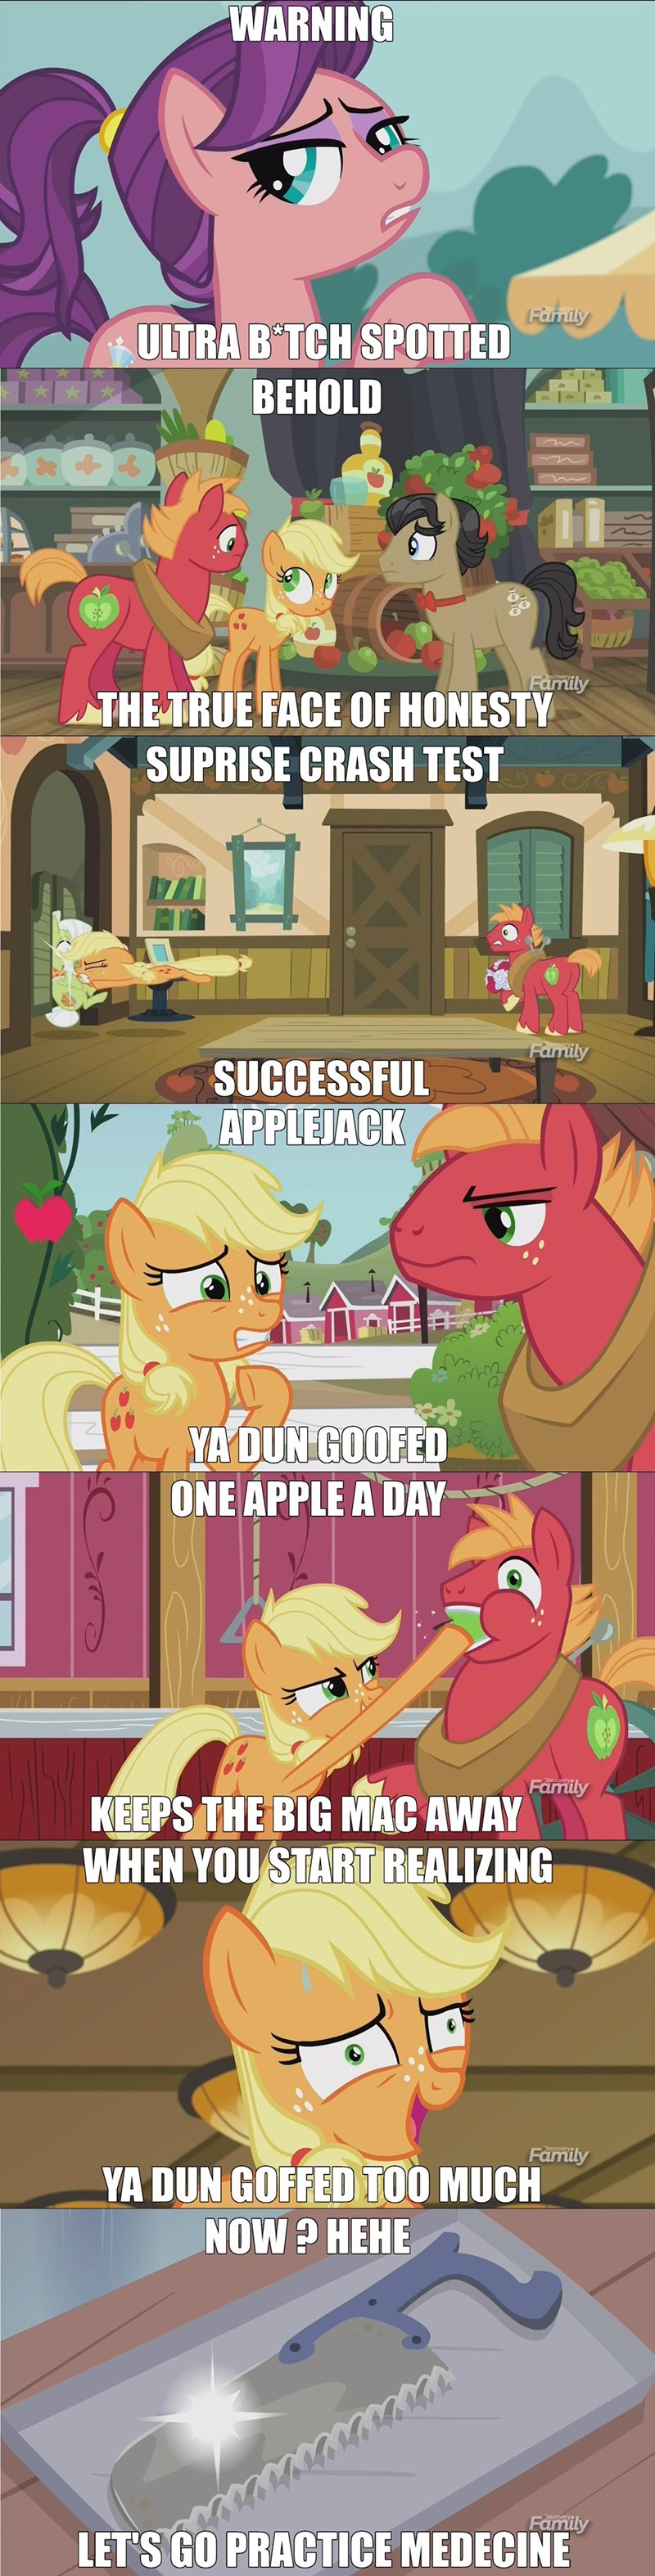 where the apple lies filthy rich Memes Big Macintosh spoiled rich granny smith - 8982183680